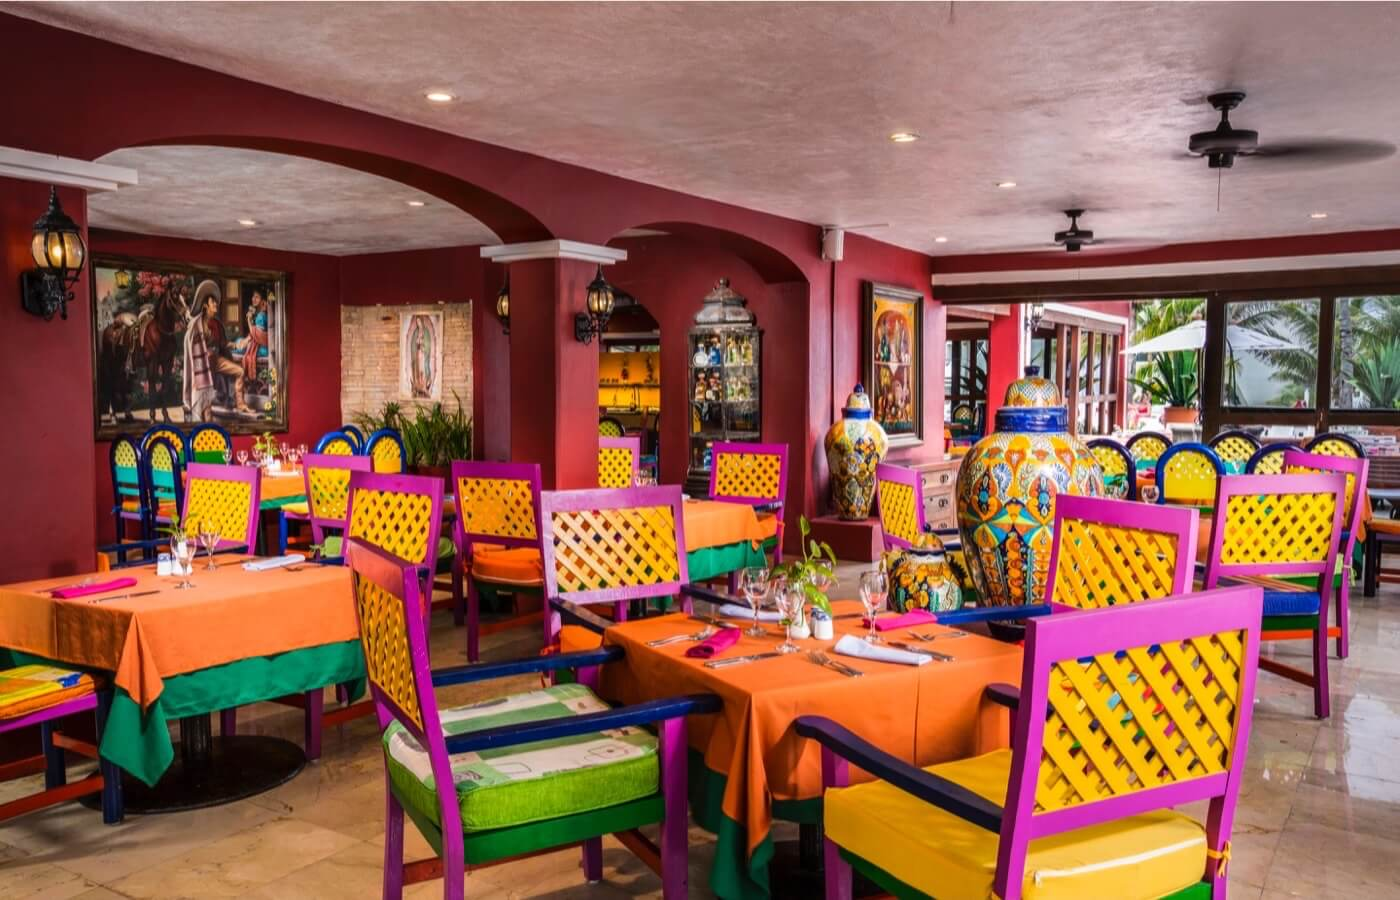 Inside view of Scirocco Sport Bar Diner Restaurant at Hotel Grand Oasis Cancun